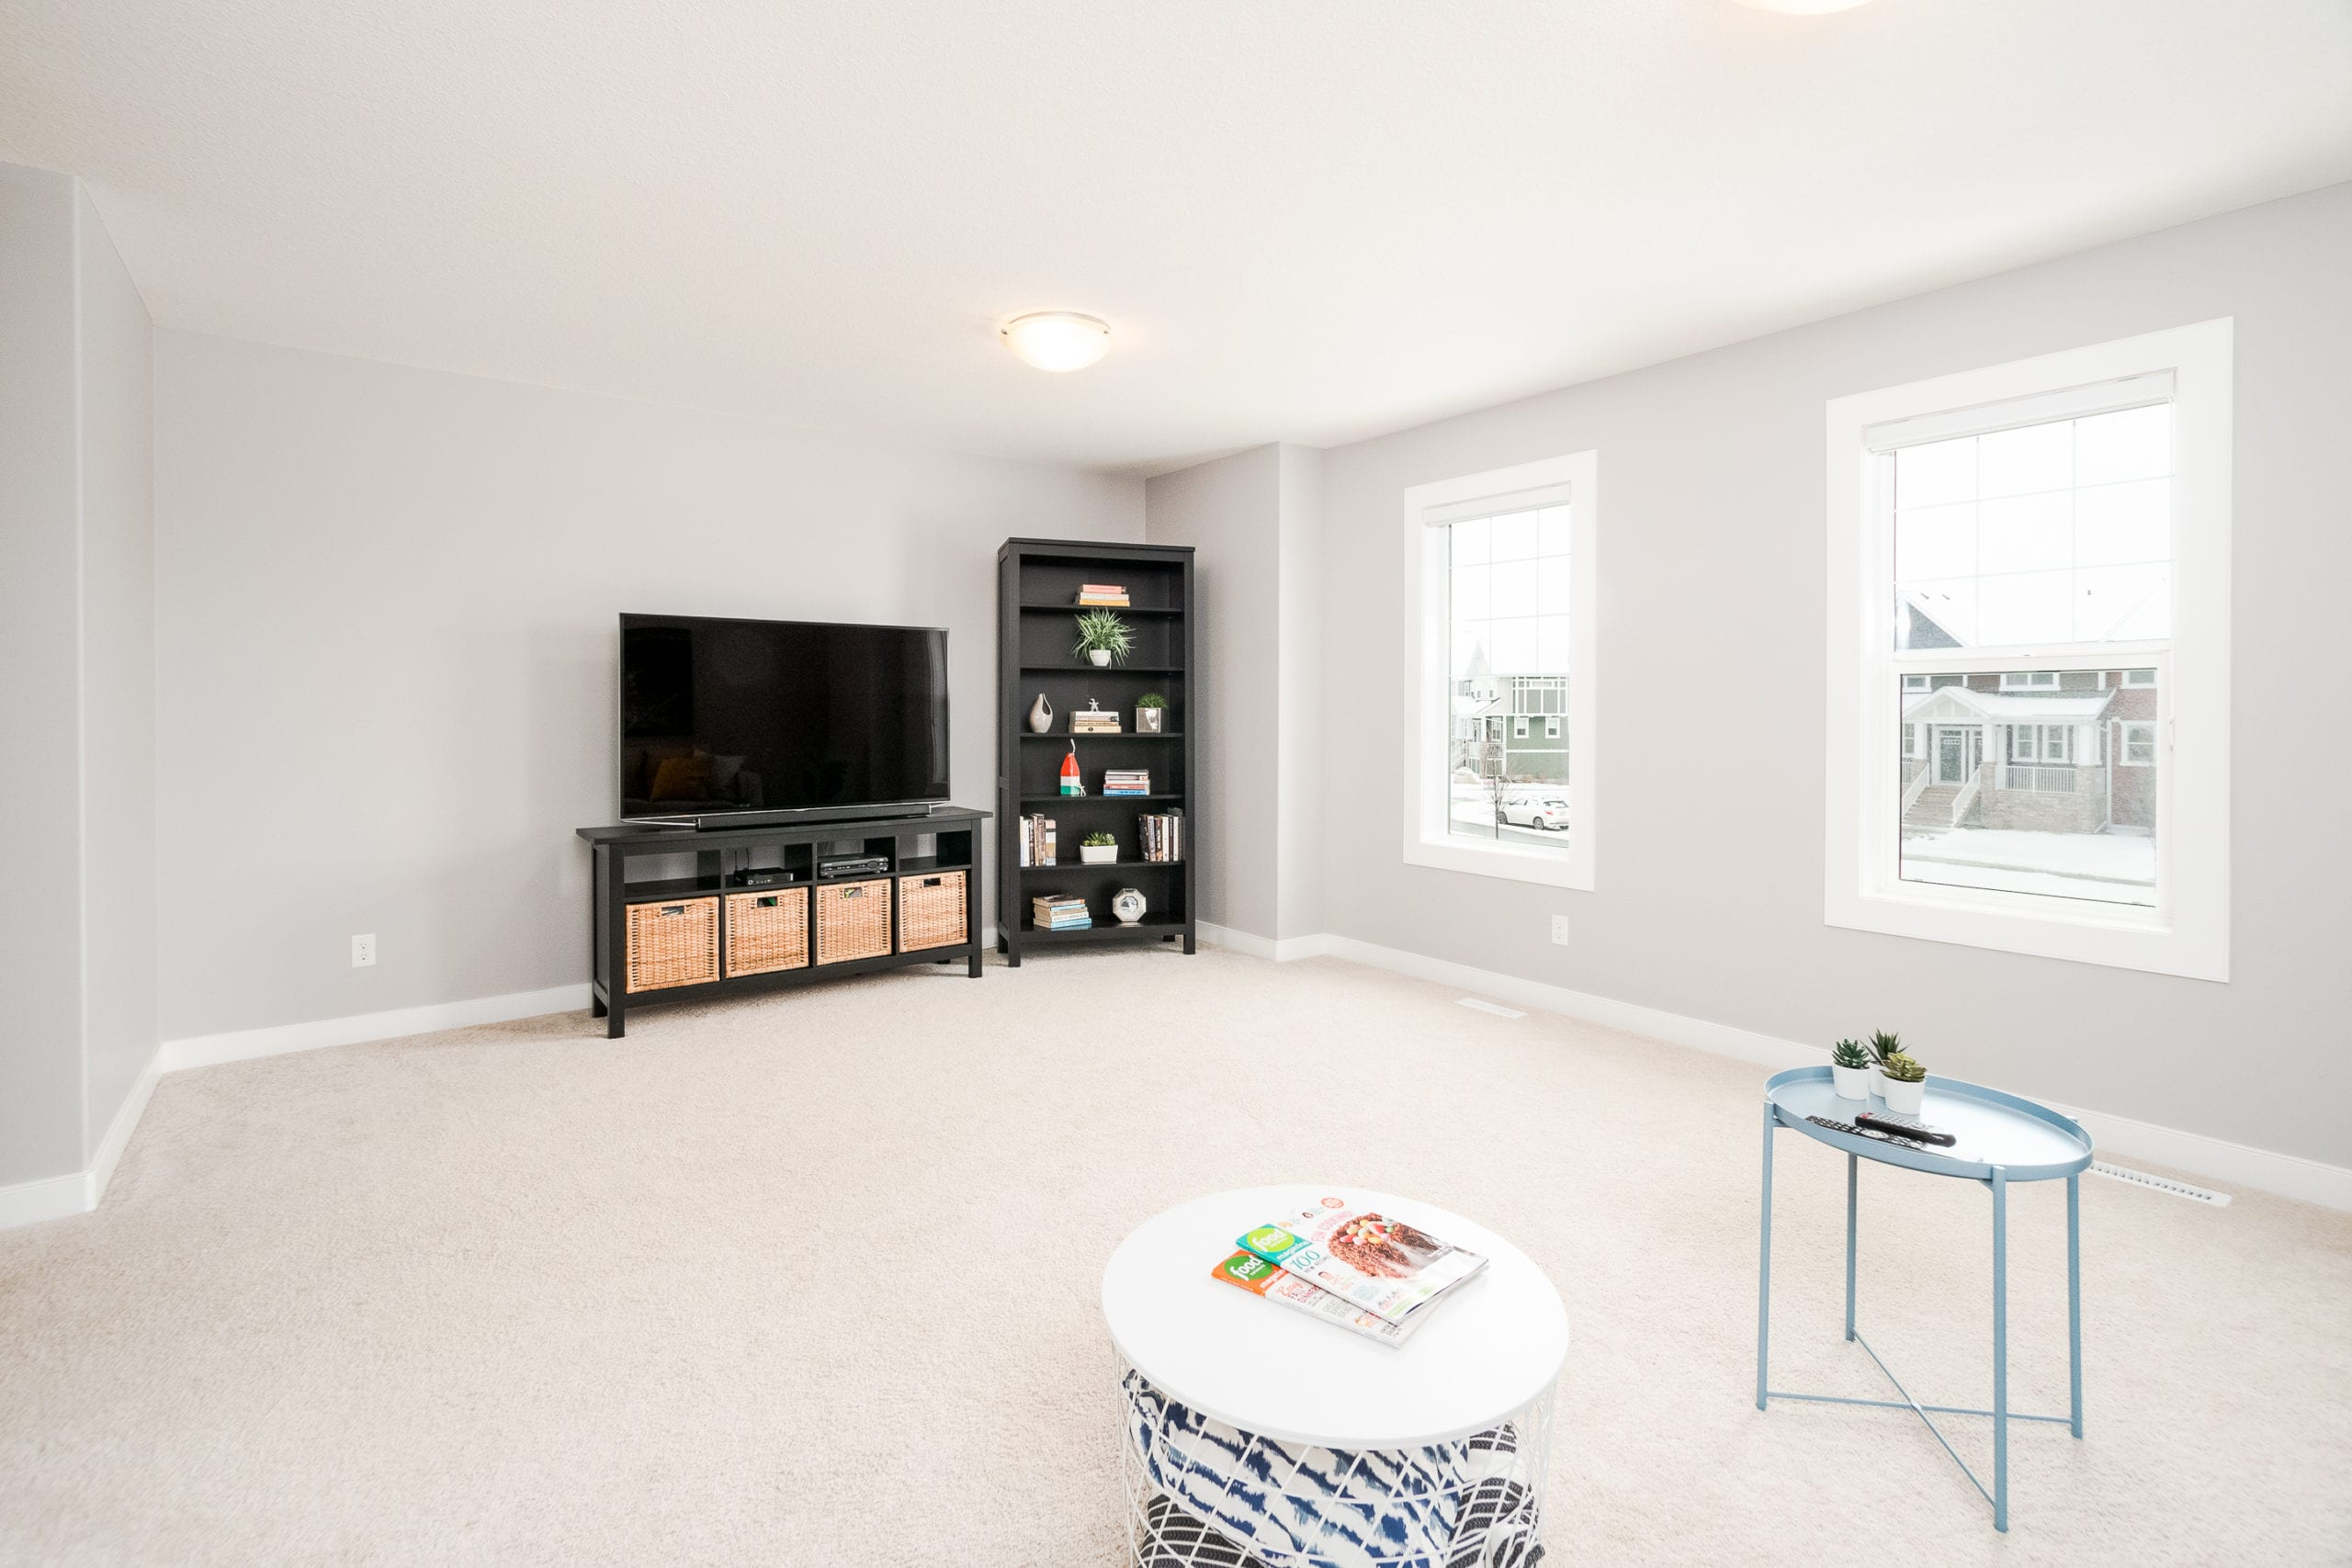 Hello Gorgeous - 1306 Kings Heights Way SE, Airdrie AB. - Tara Molina Real Estate (42 of 53)